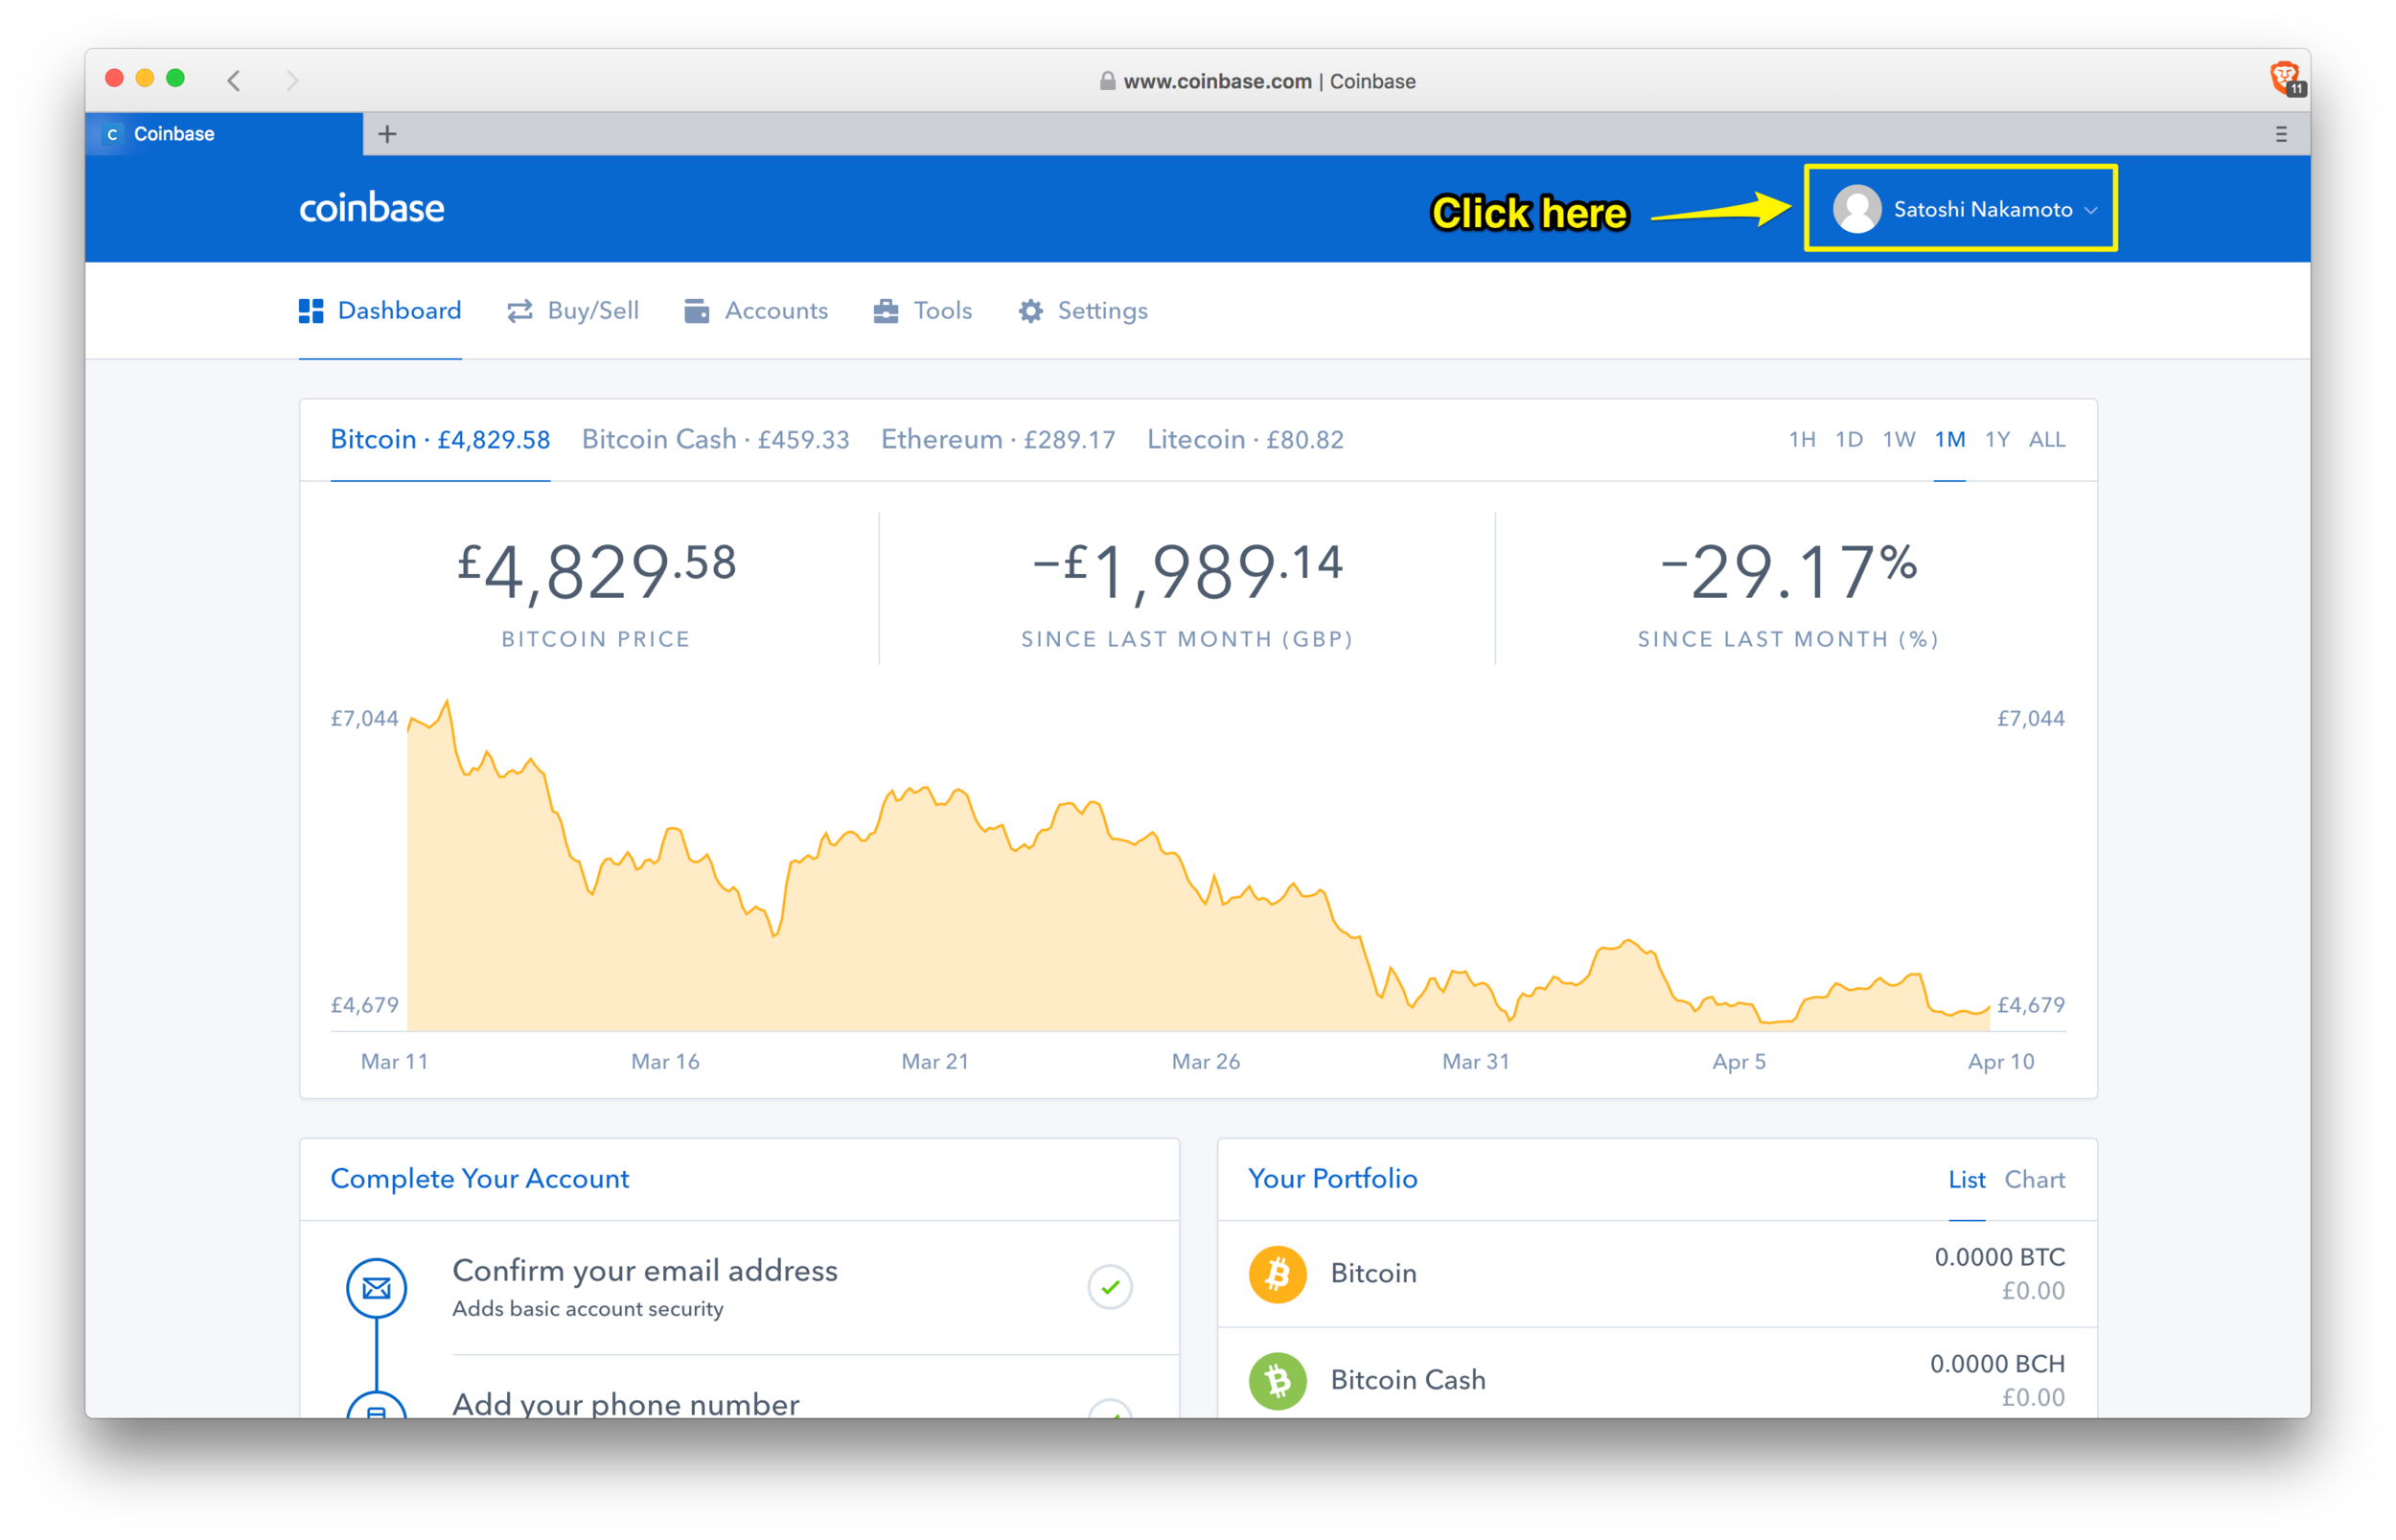 Coinbase: dashboard